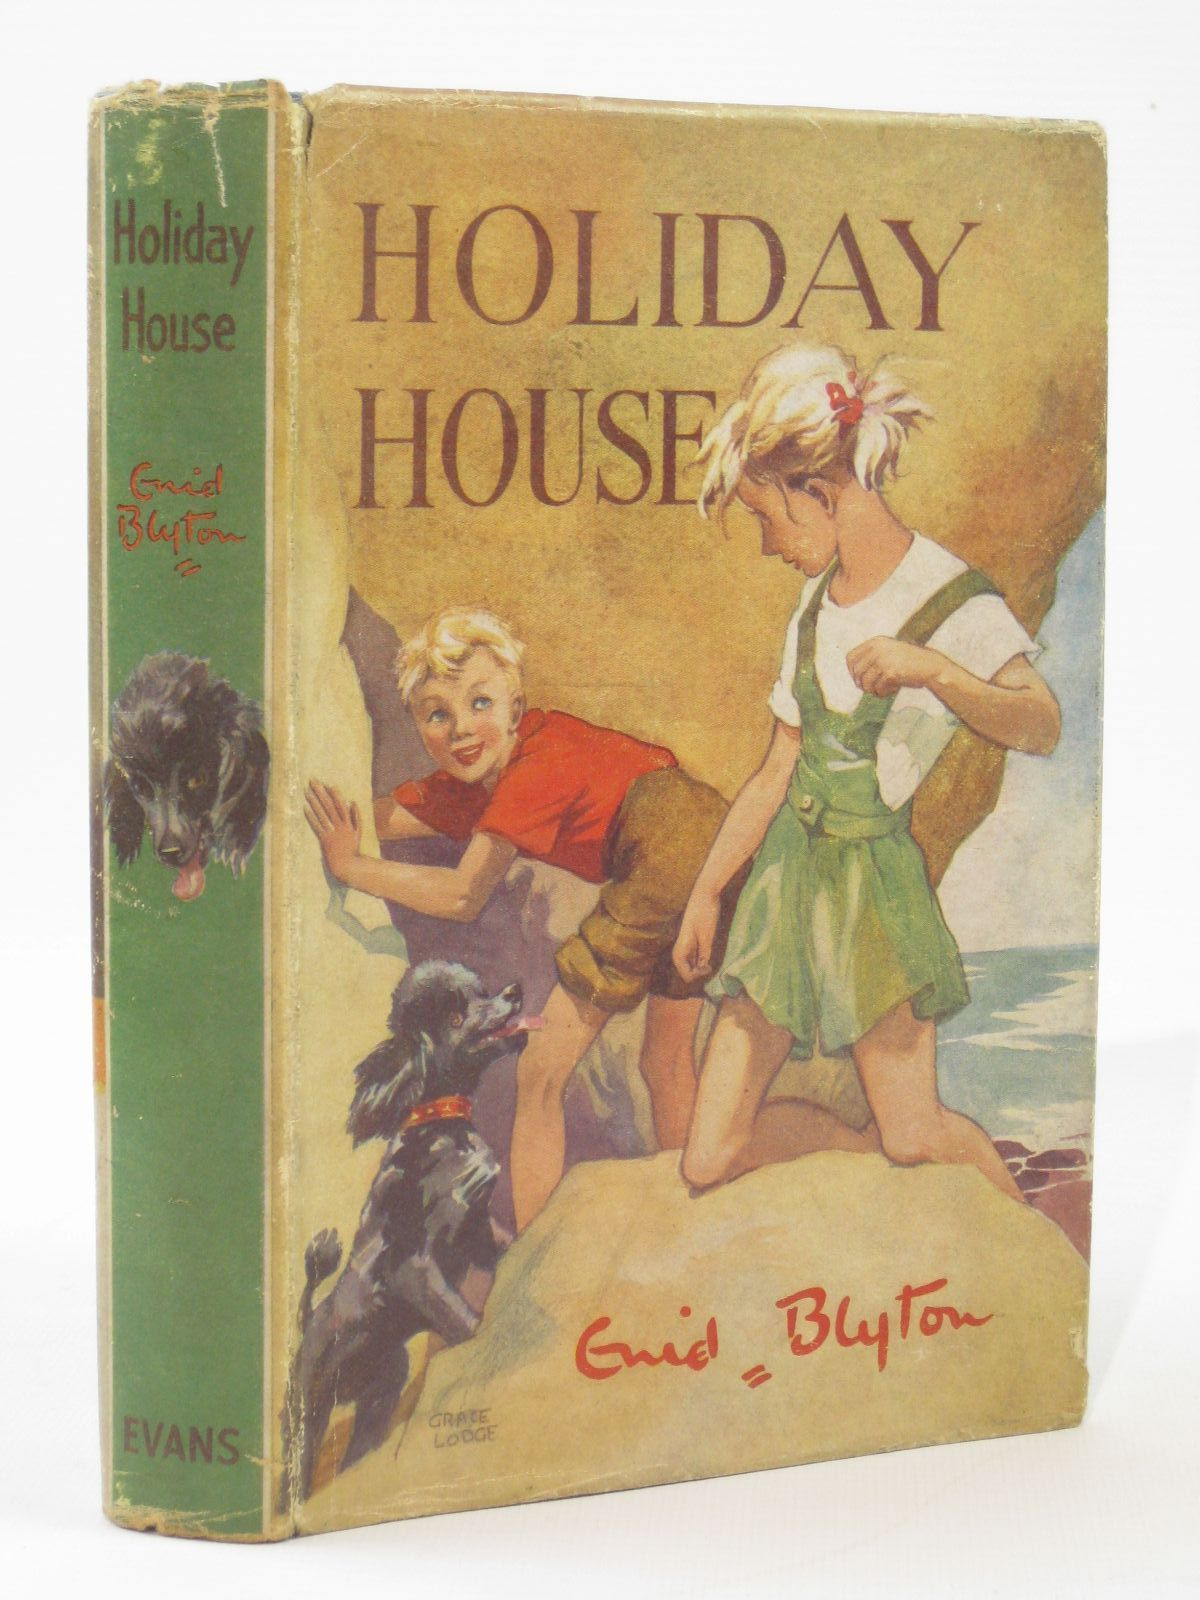 Photo of HOLIDAY HOUSE written by Blyton, Enid illustrated by Lodge, Grace published by Evans Brothers Limited (STOCK CODE: 1316767)  for sale by Stella & Rose's Books